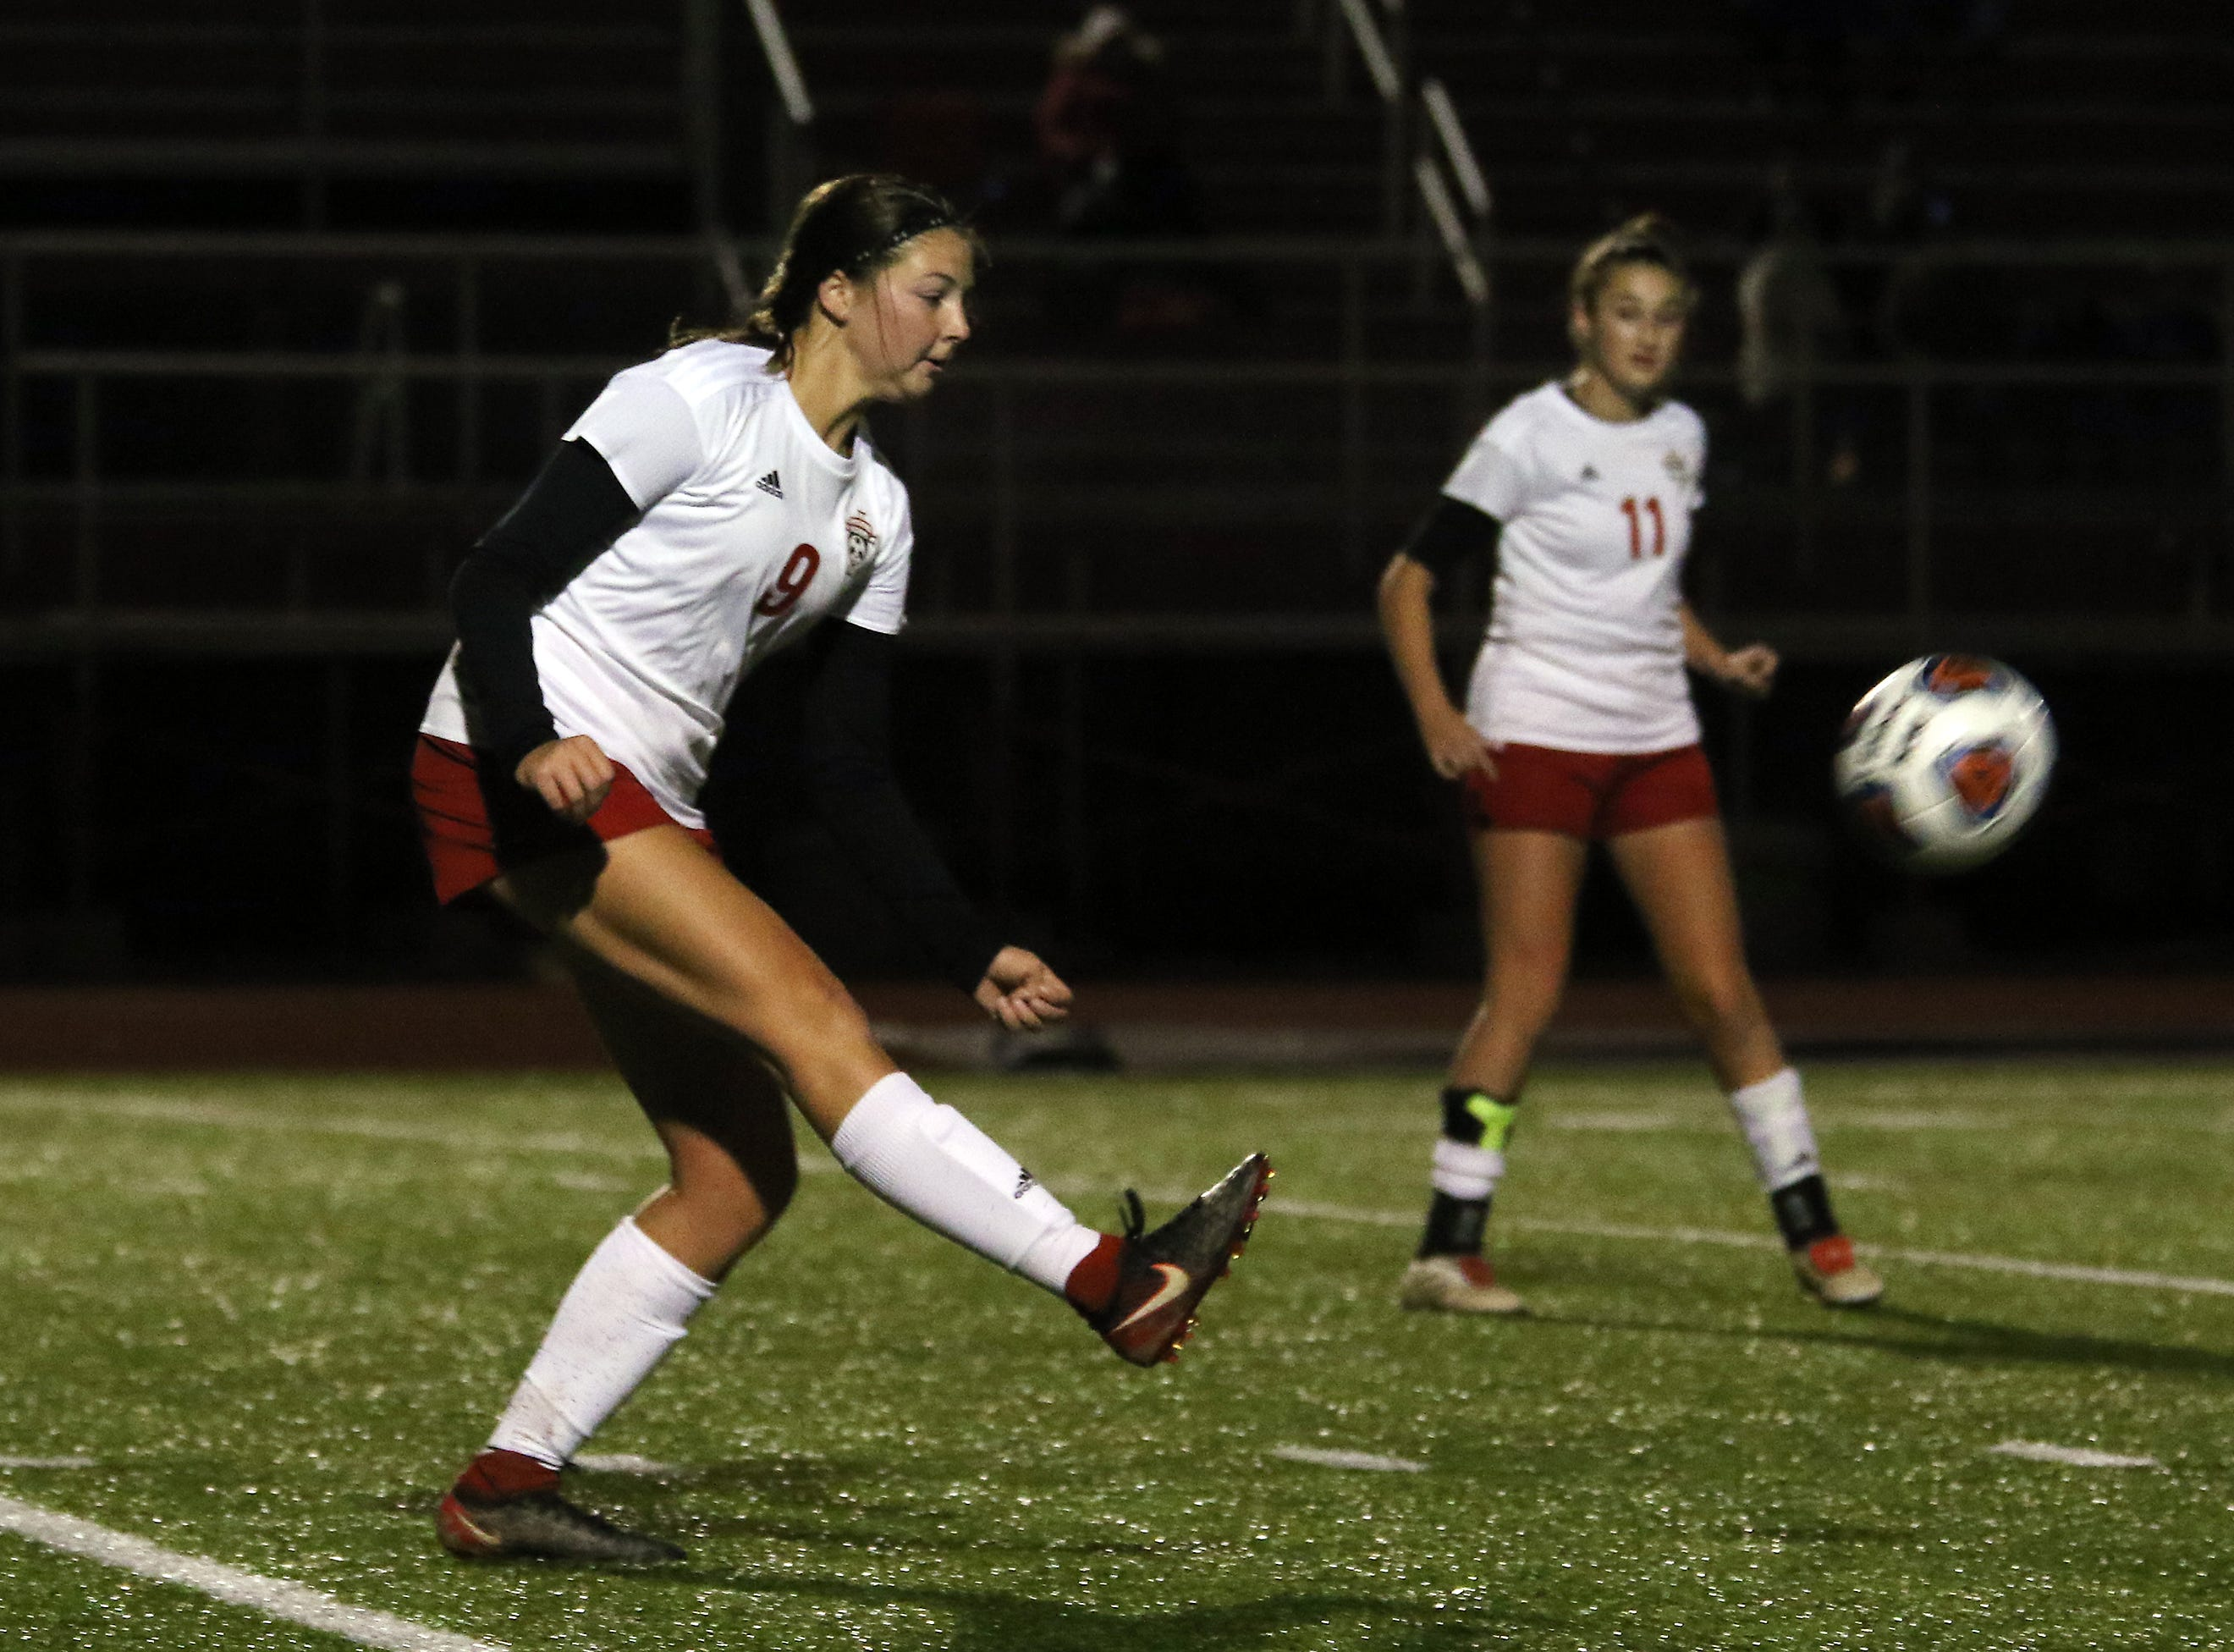 Rosecrans' Maggie Hutcheson passes the ball against CCD in the Division III state semifinals at London High School on Tuesday.